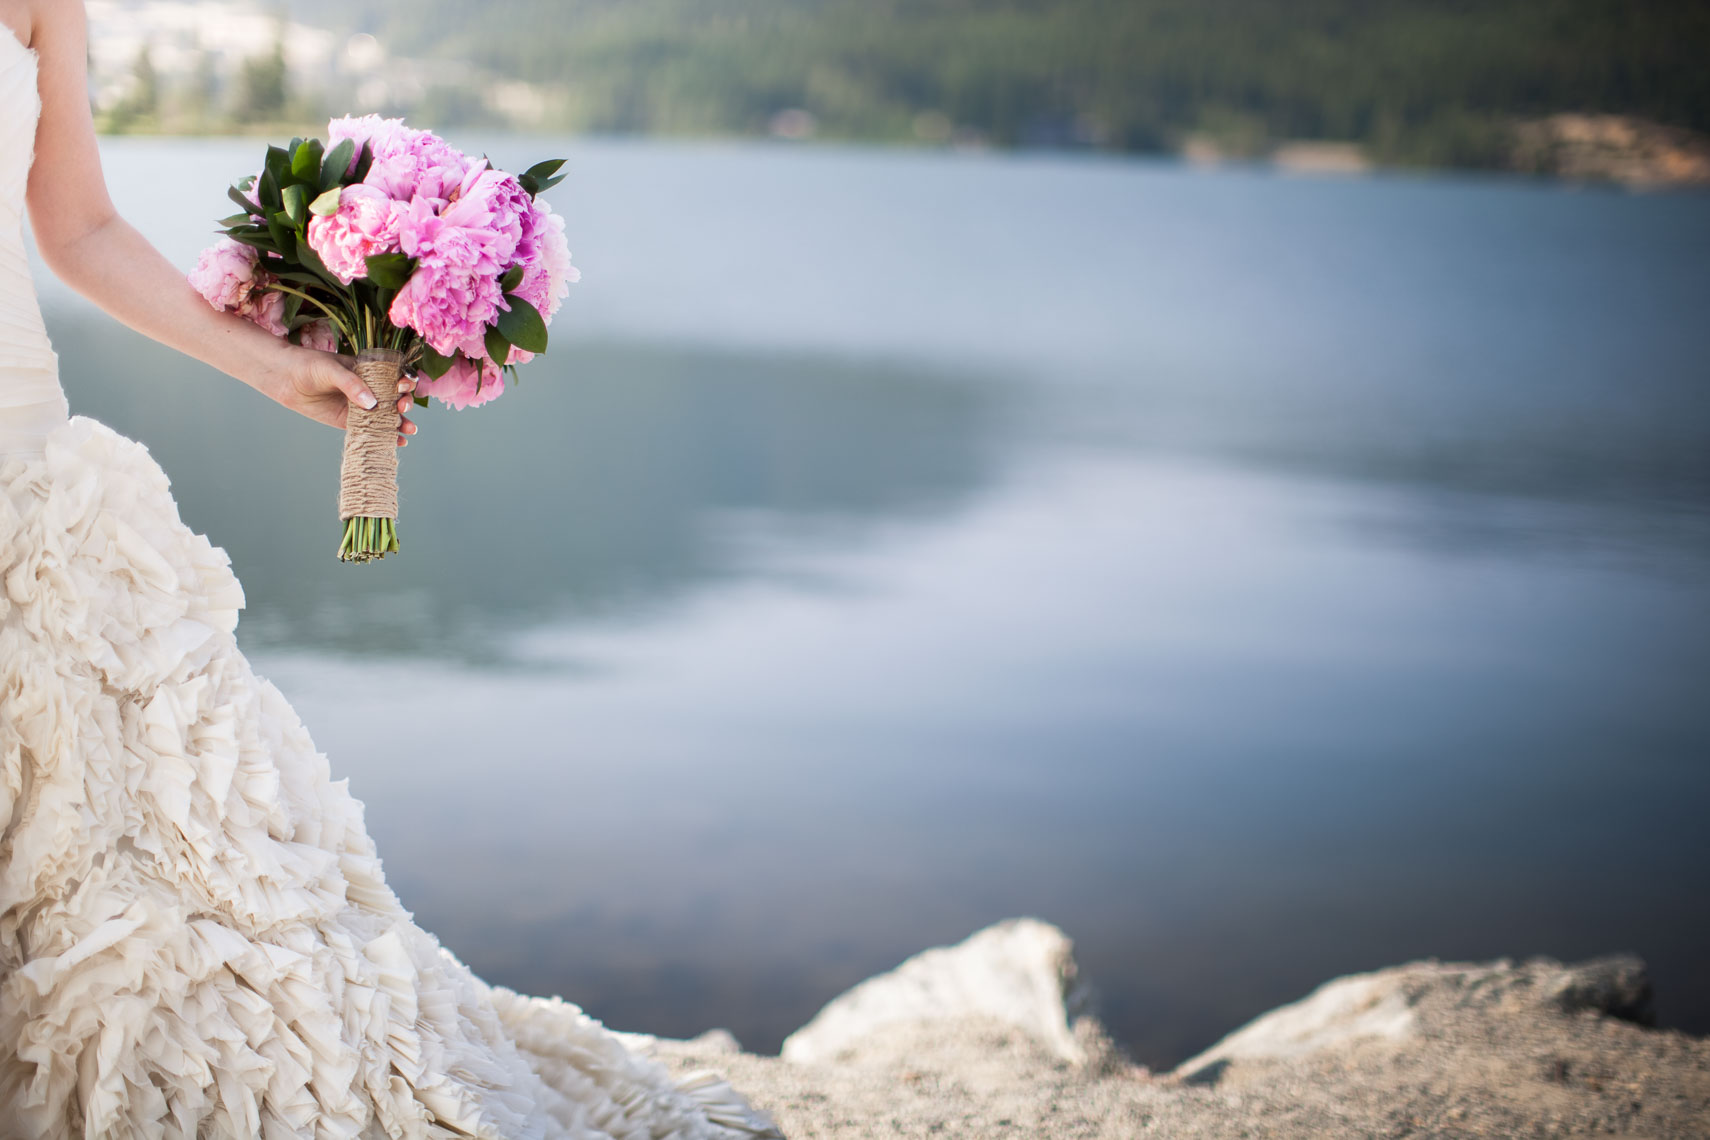 Bride holding wedding bouquet by Lost Lake in Whistler BC